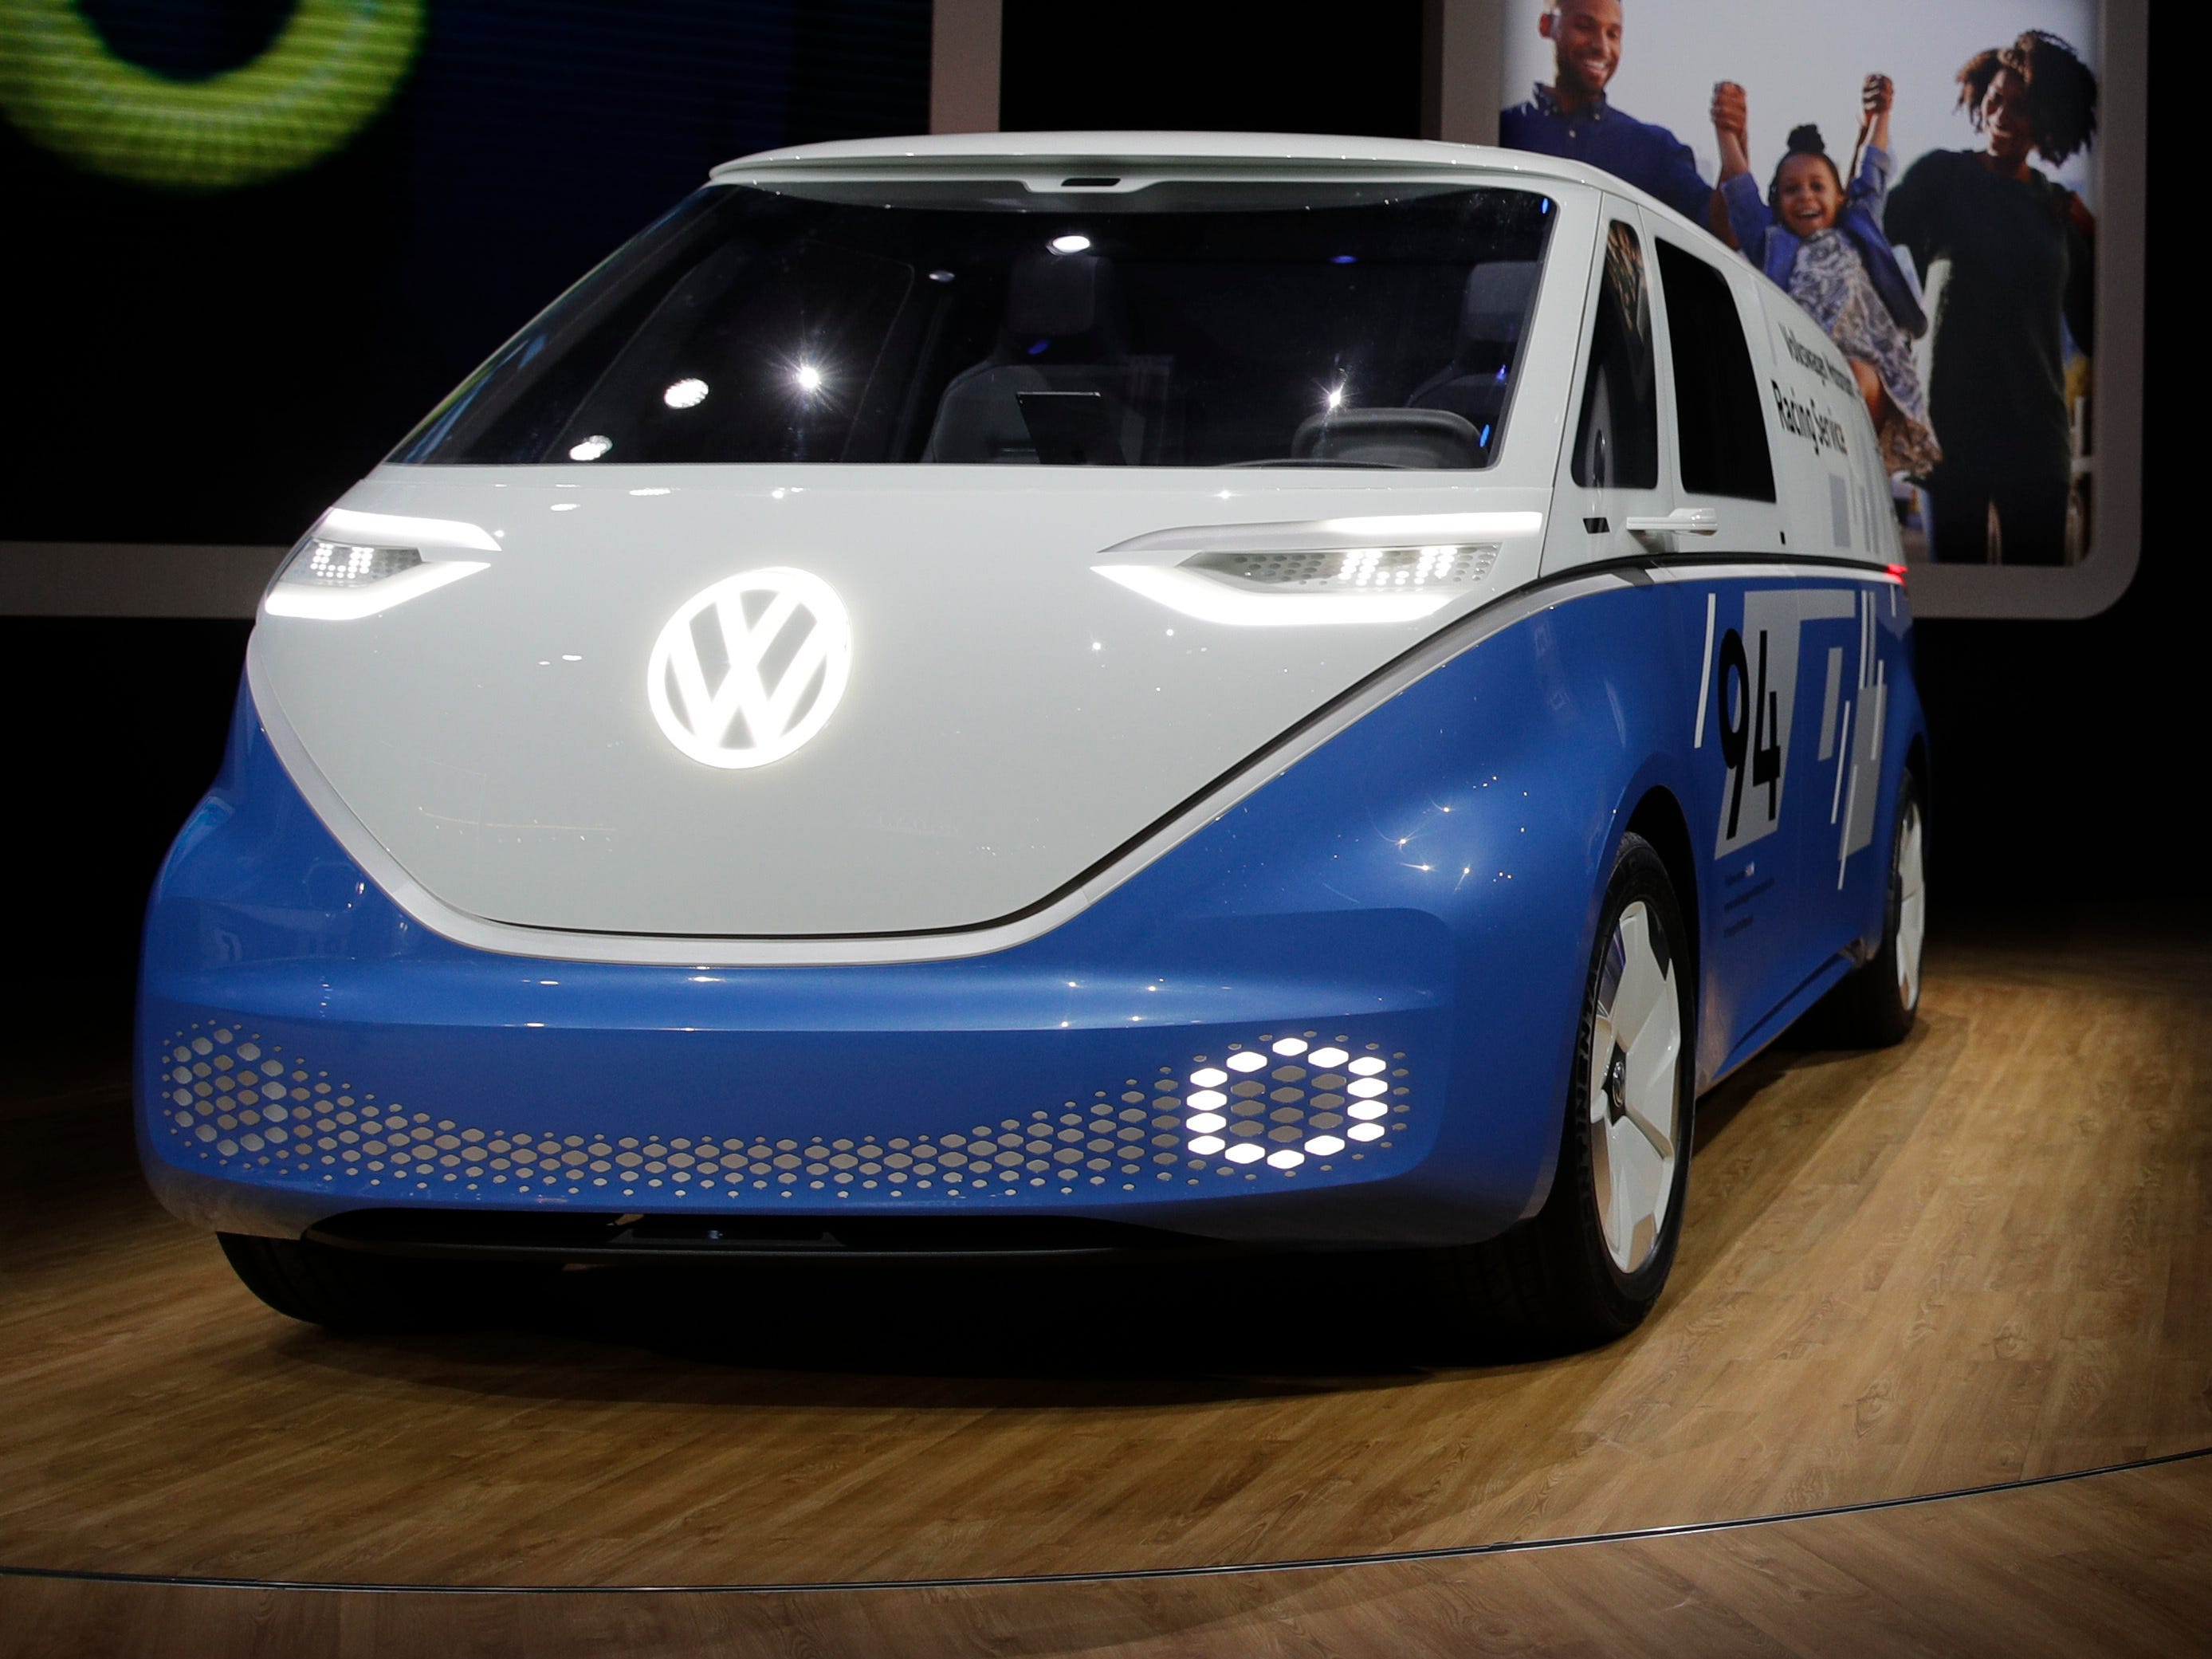 The Volkswagen Buzz Cargo concept, left, is unveiled at the Los Angeles Auto Show on Wednesday, Nov. 28, 2018.